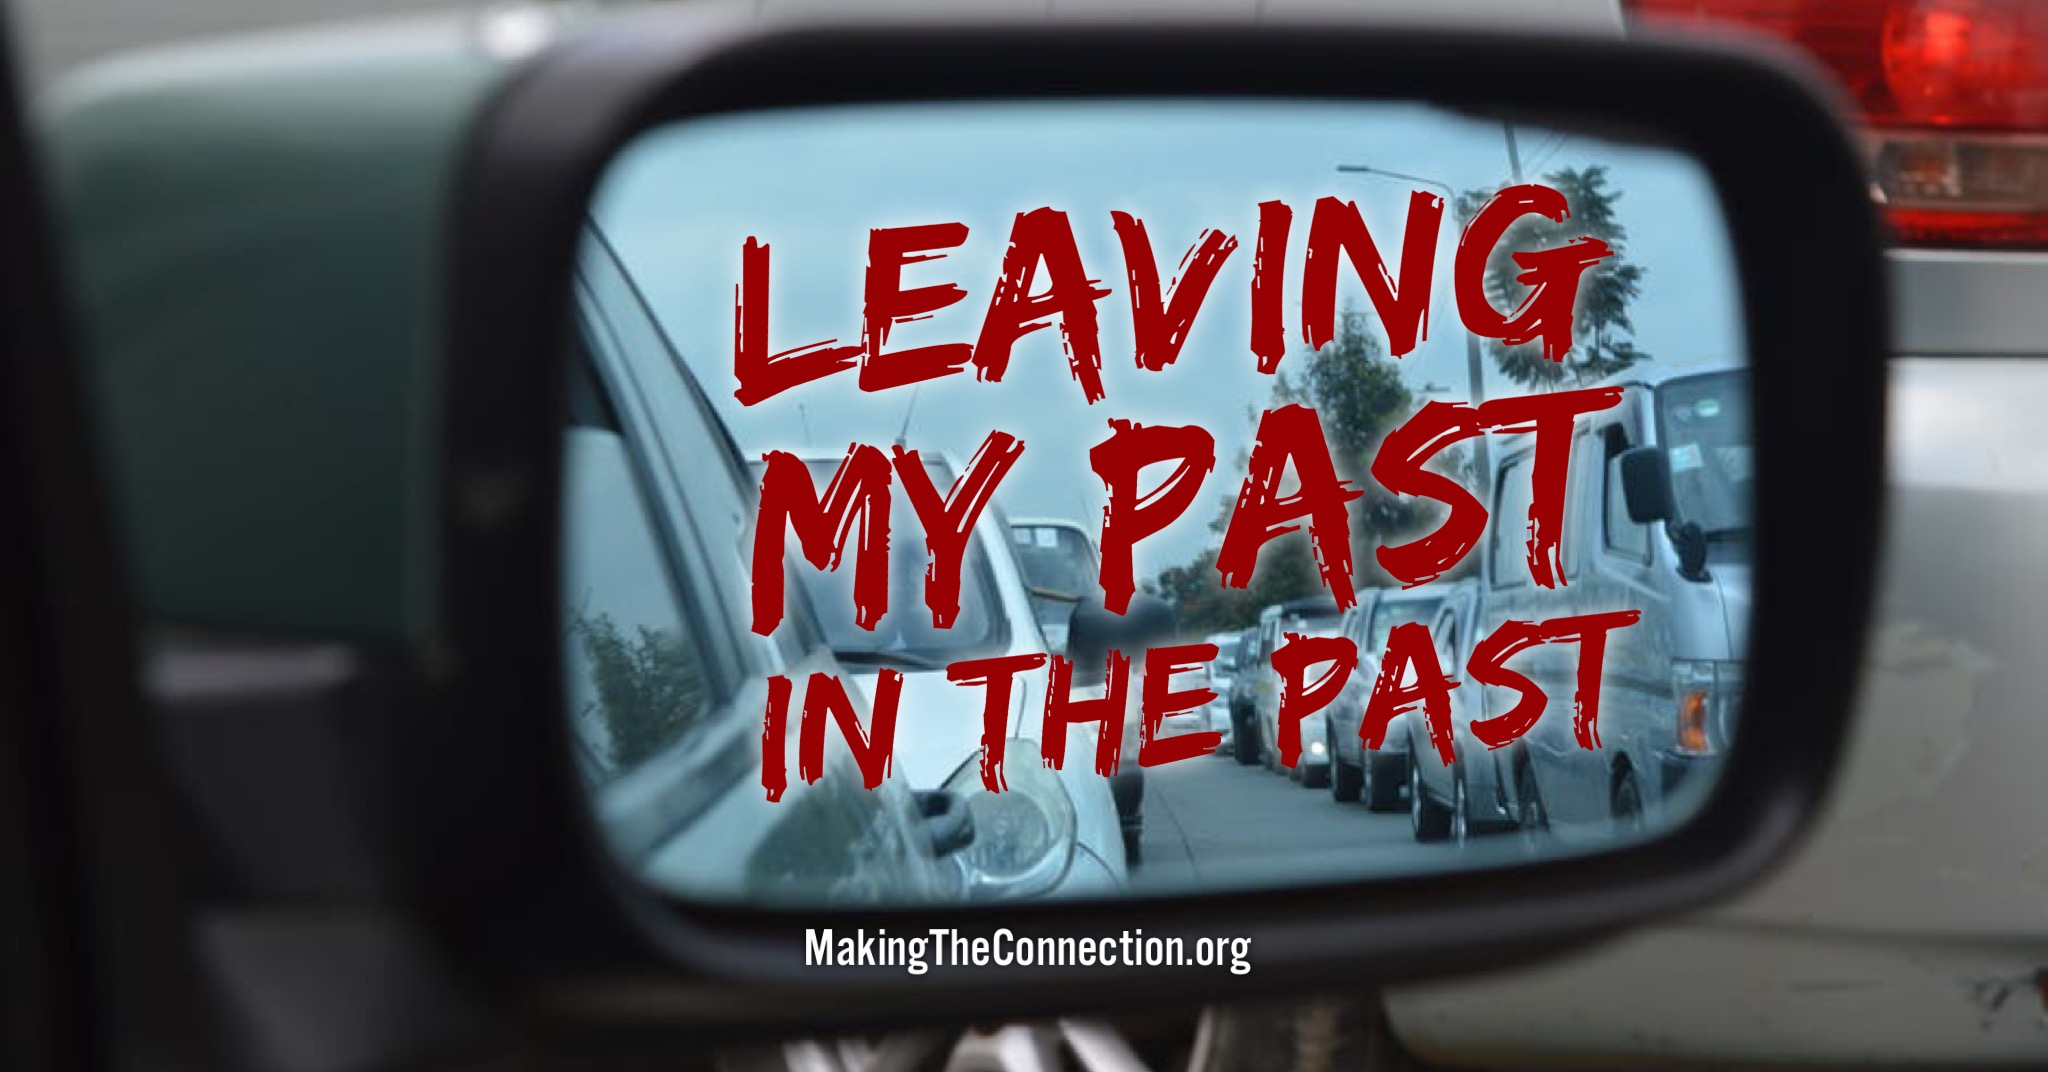 Leaving my past in the past